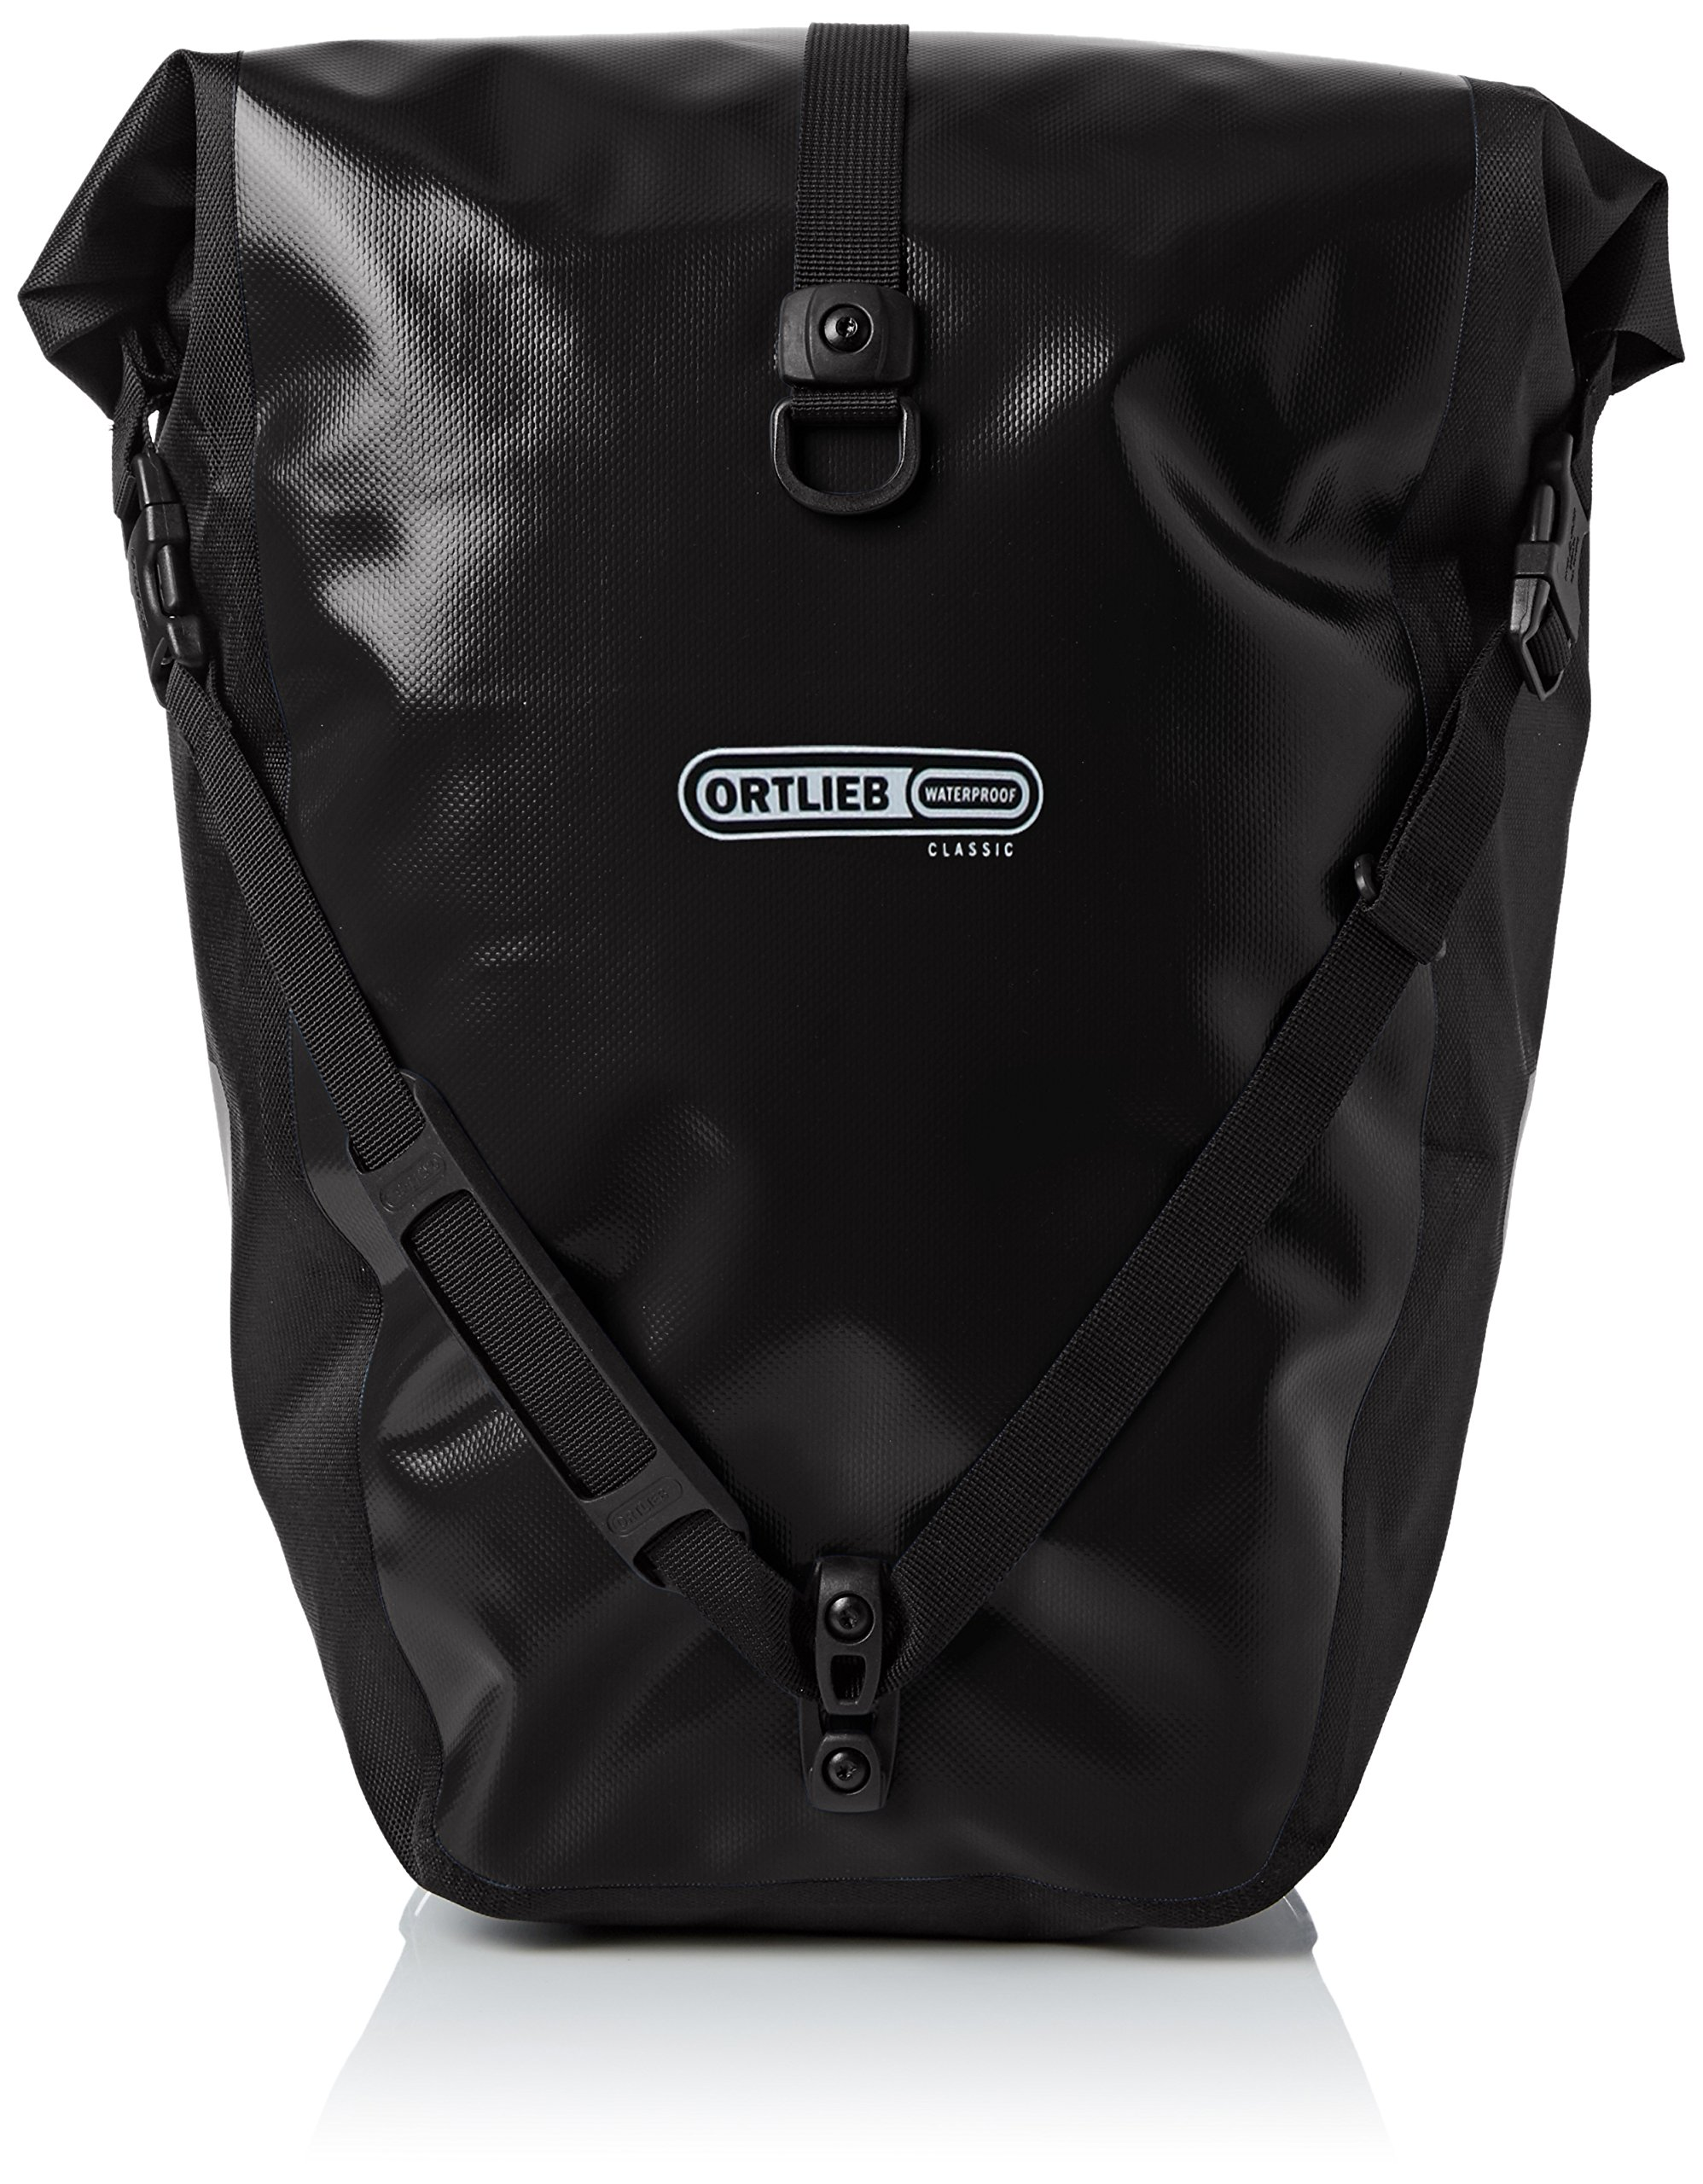 Ortlieb Back Roller Classic Black Panniers 2016